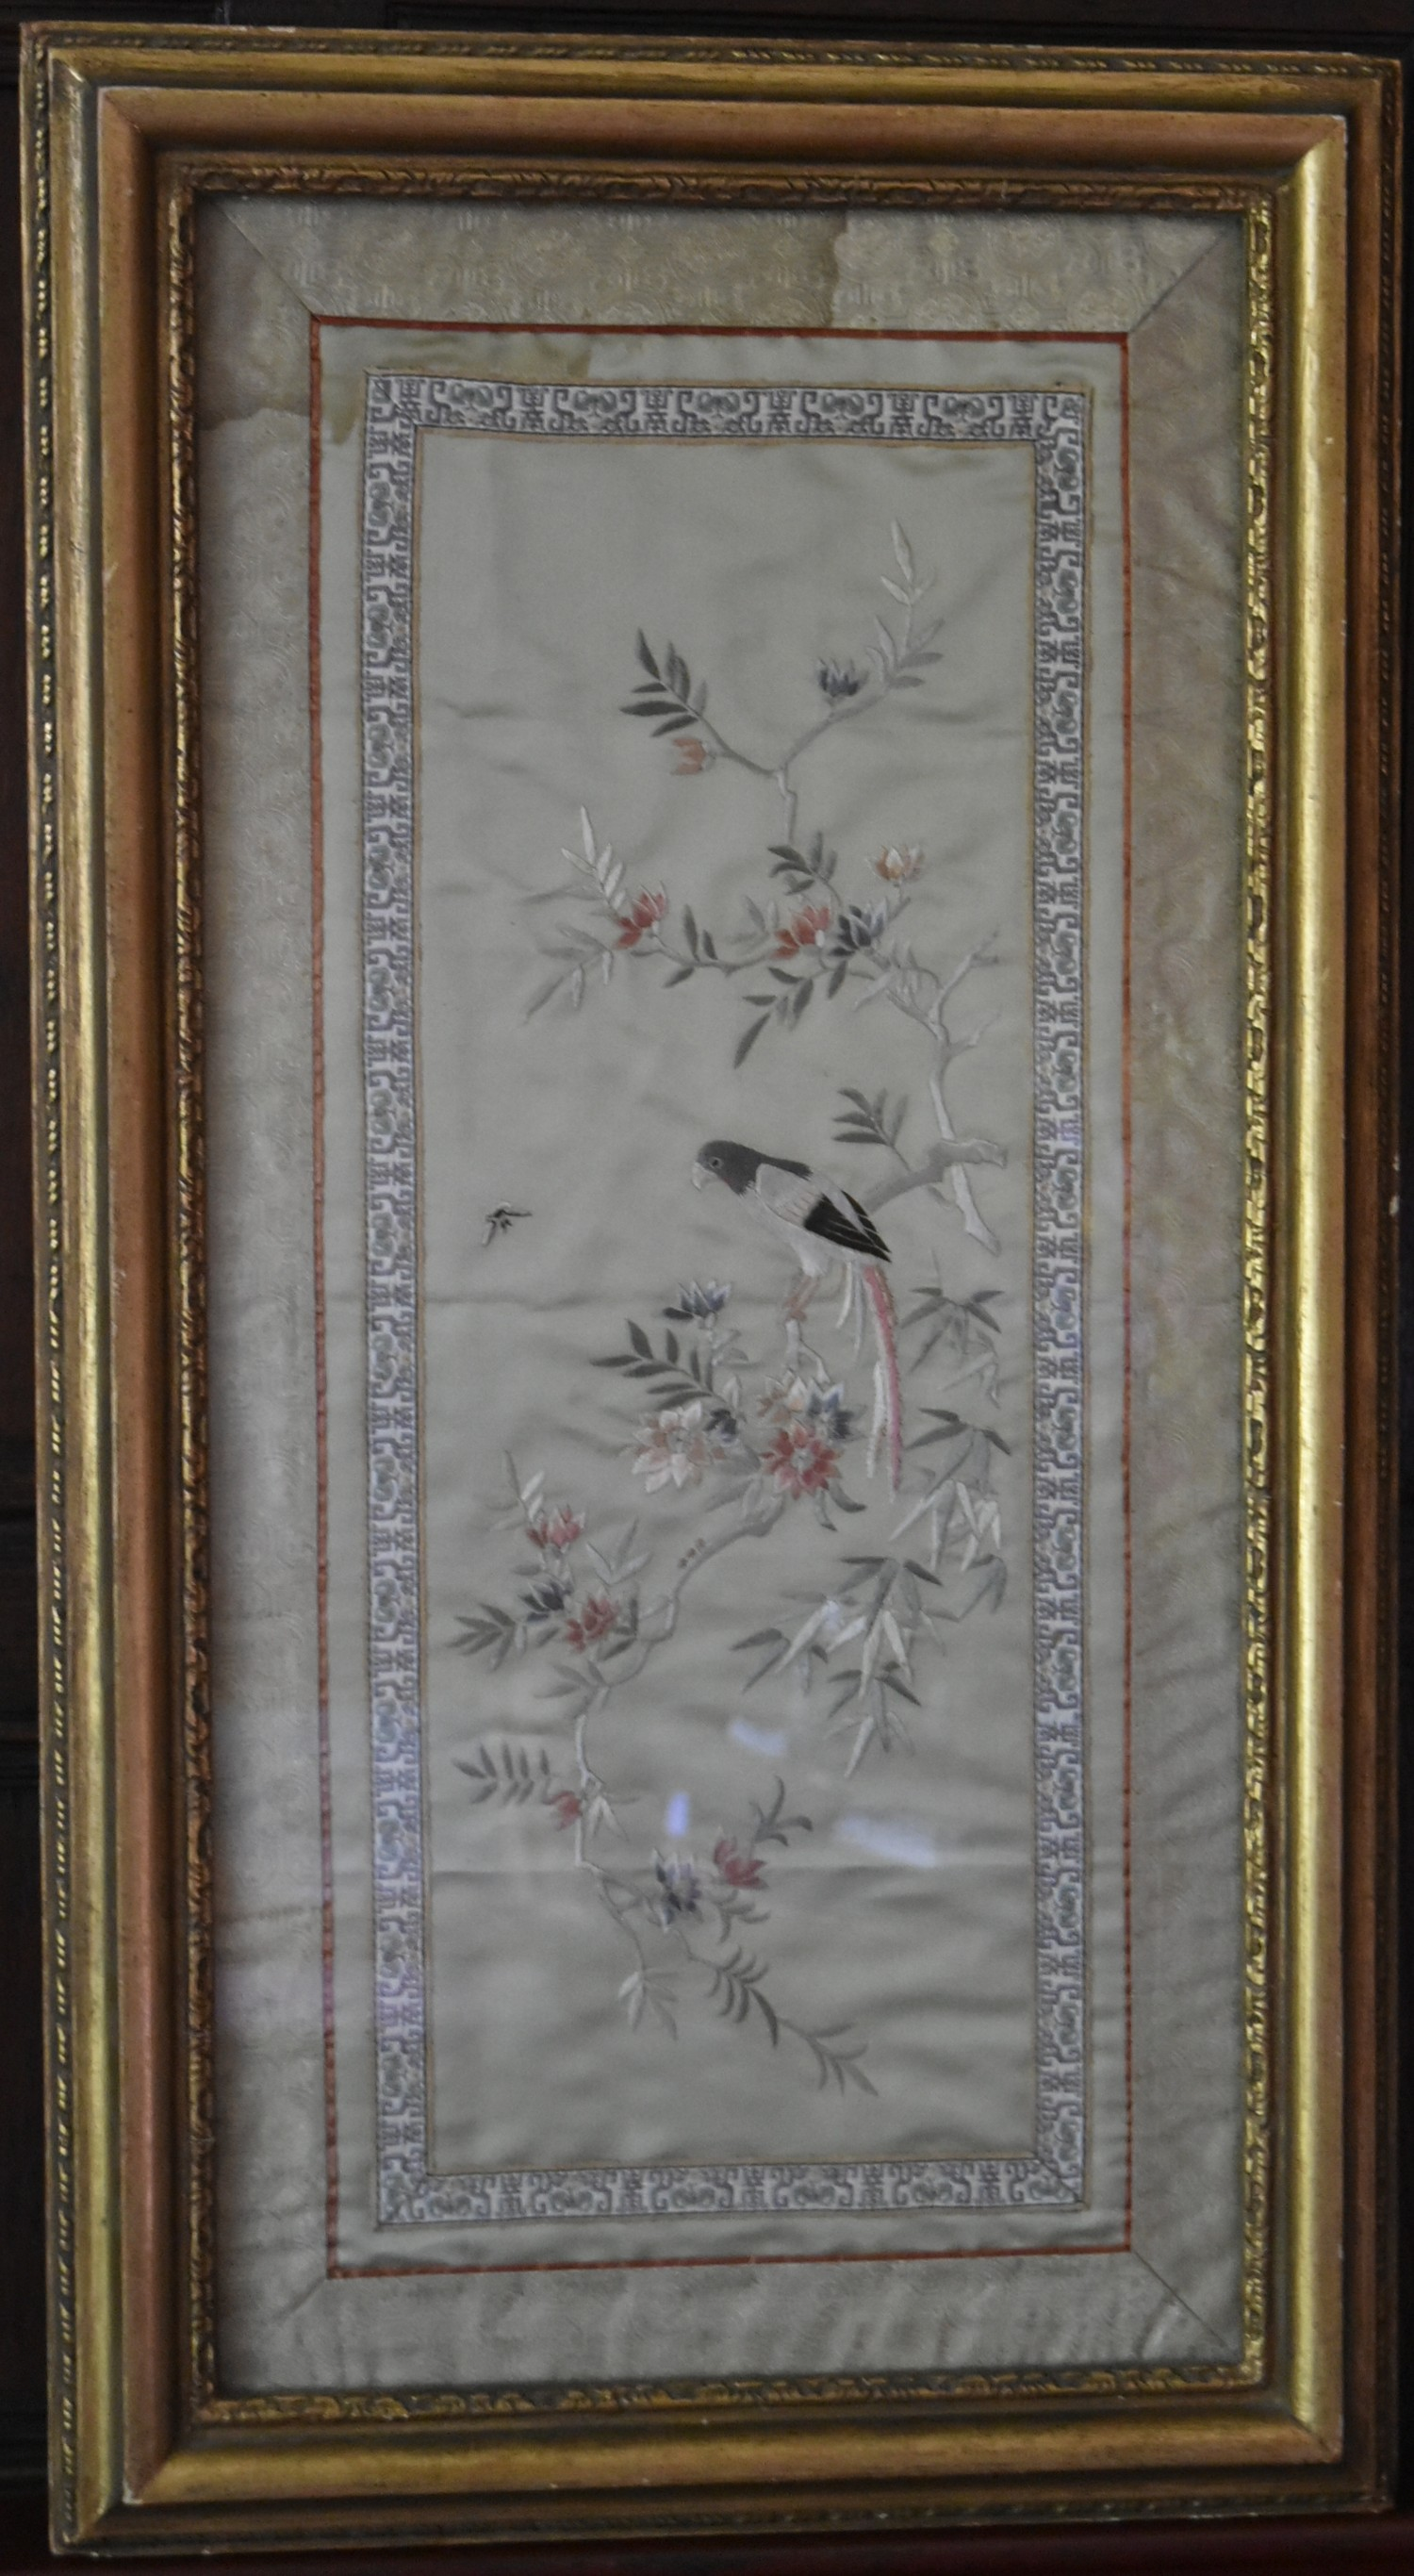 A Japanese framed and glazed silk work embroidery of a parakeet on a branch with blossom contained - Image 2 of 3